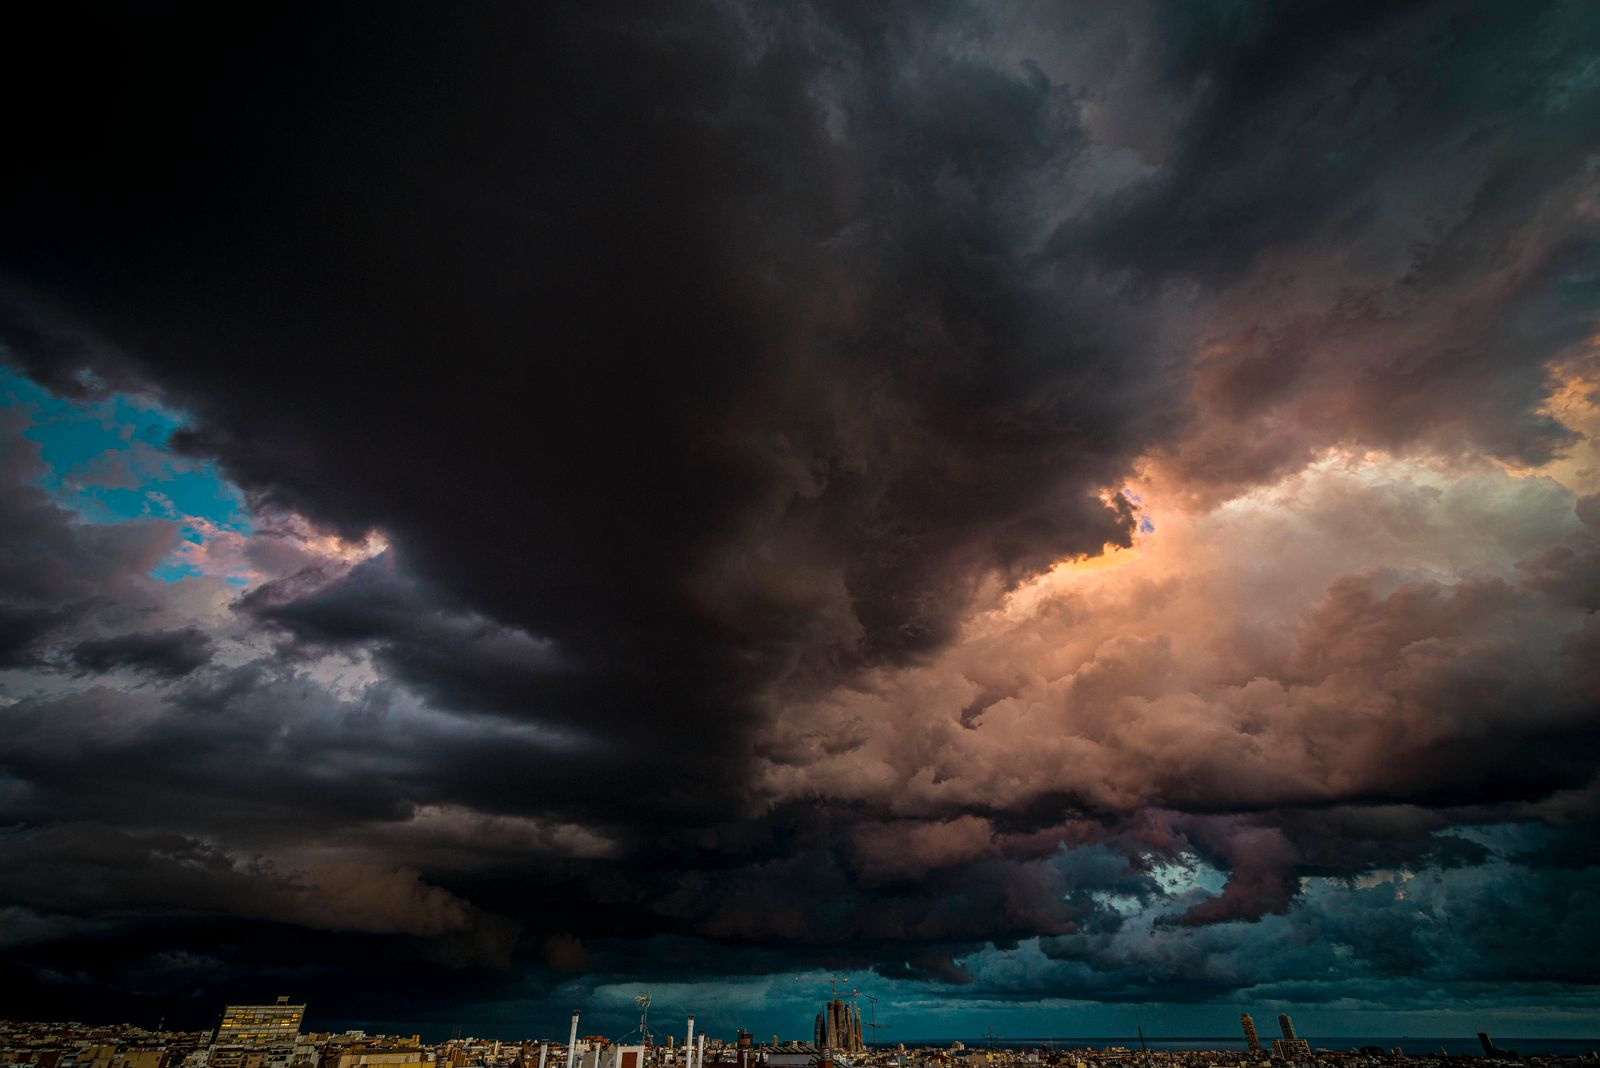 October 14, 2020, Barcelona, Catalonia, Spain: A dramatic cloudy evening sky is seen over Barcelona announcing possibly